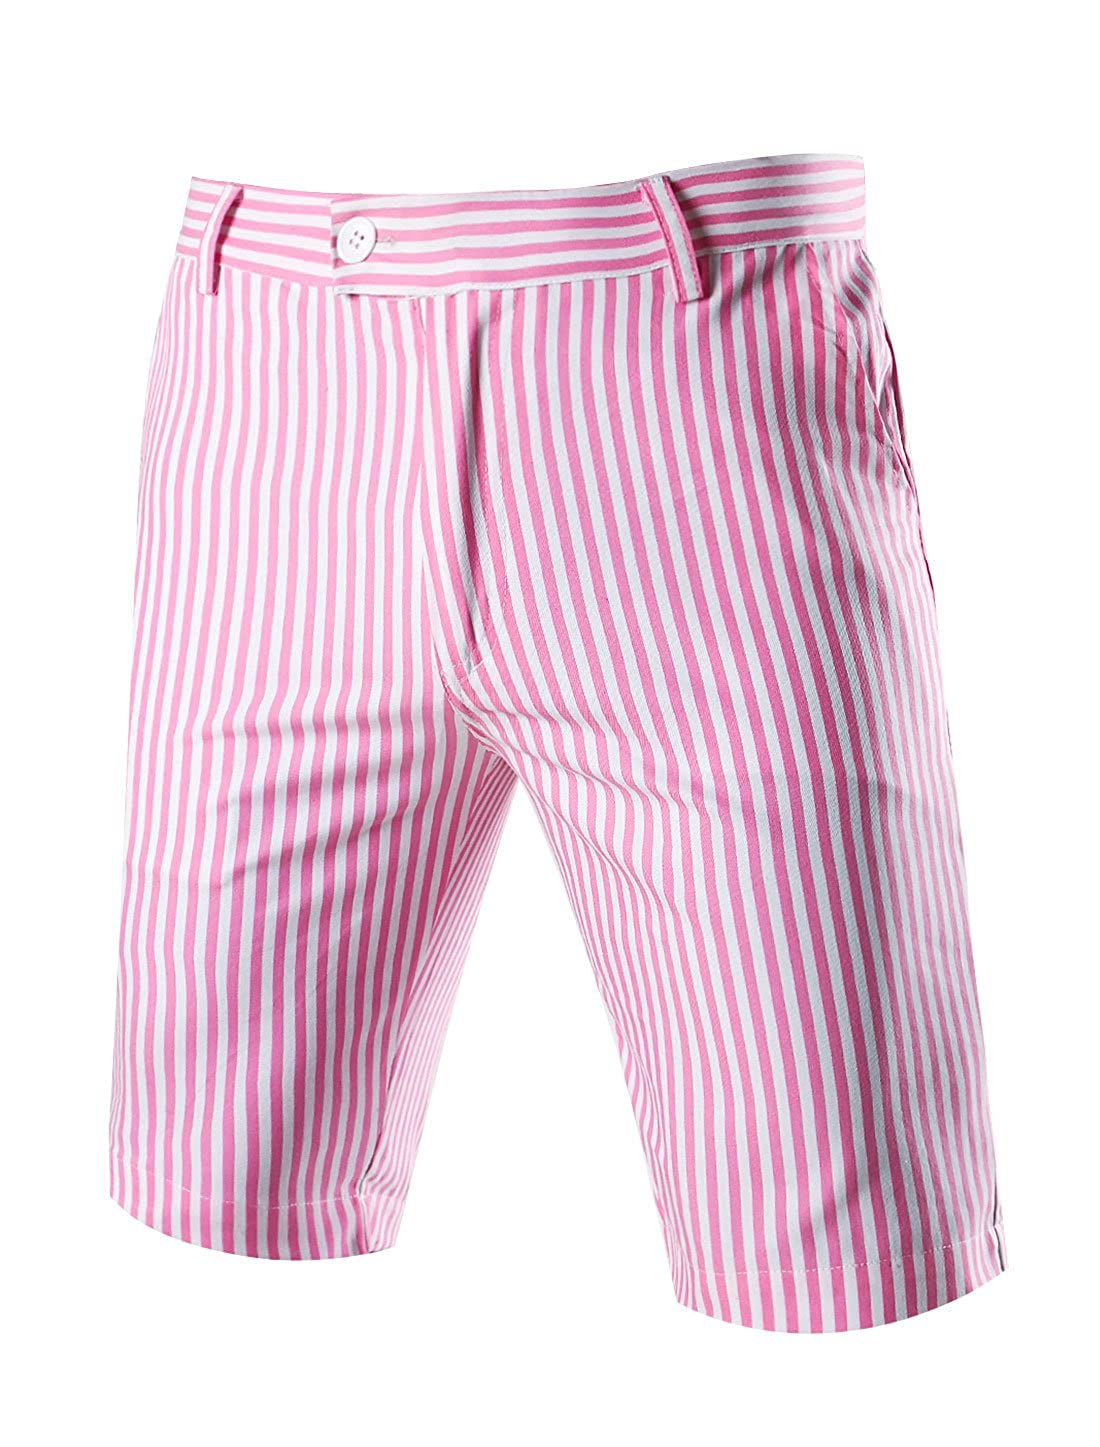 uxcell Men Stripes Flat Front Plain-Front Mid Rise Chino Walk Shorts g15070700ux0003